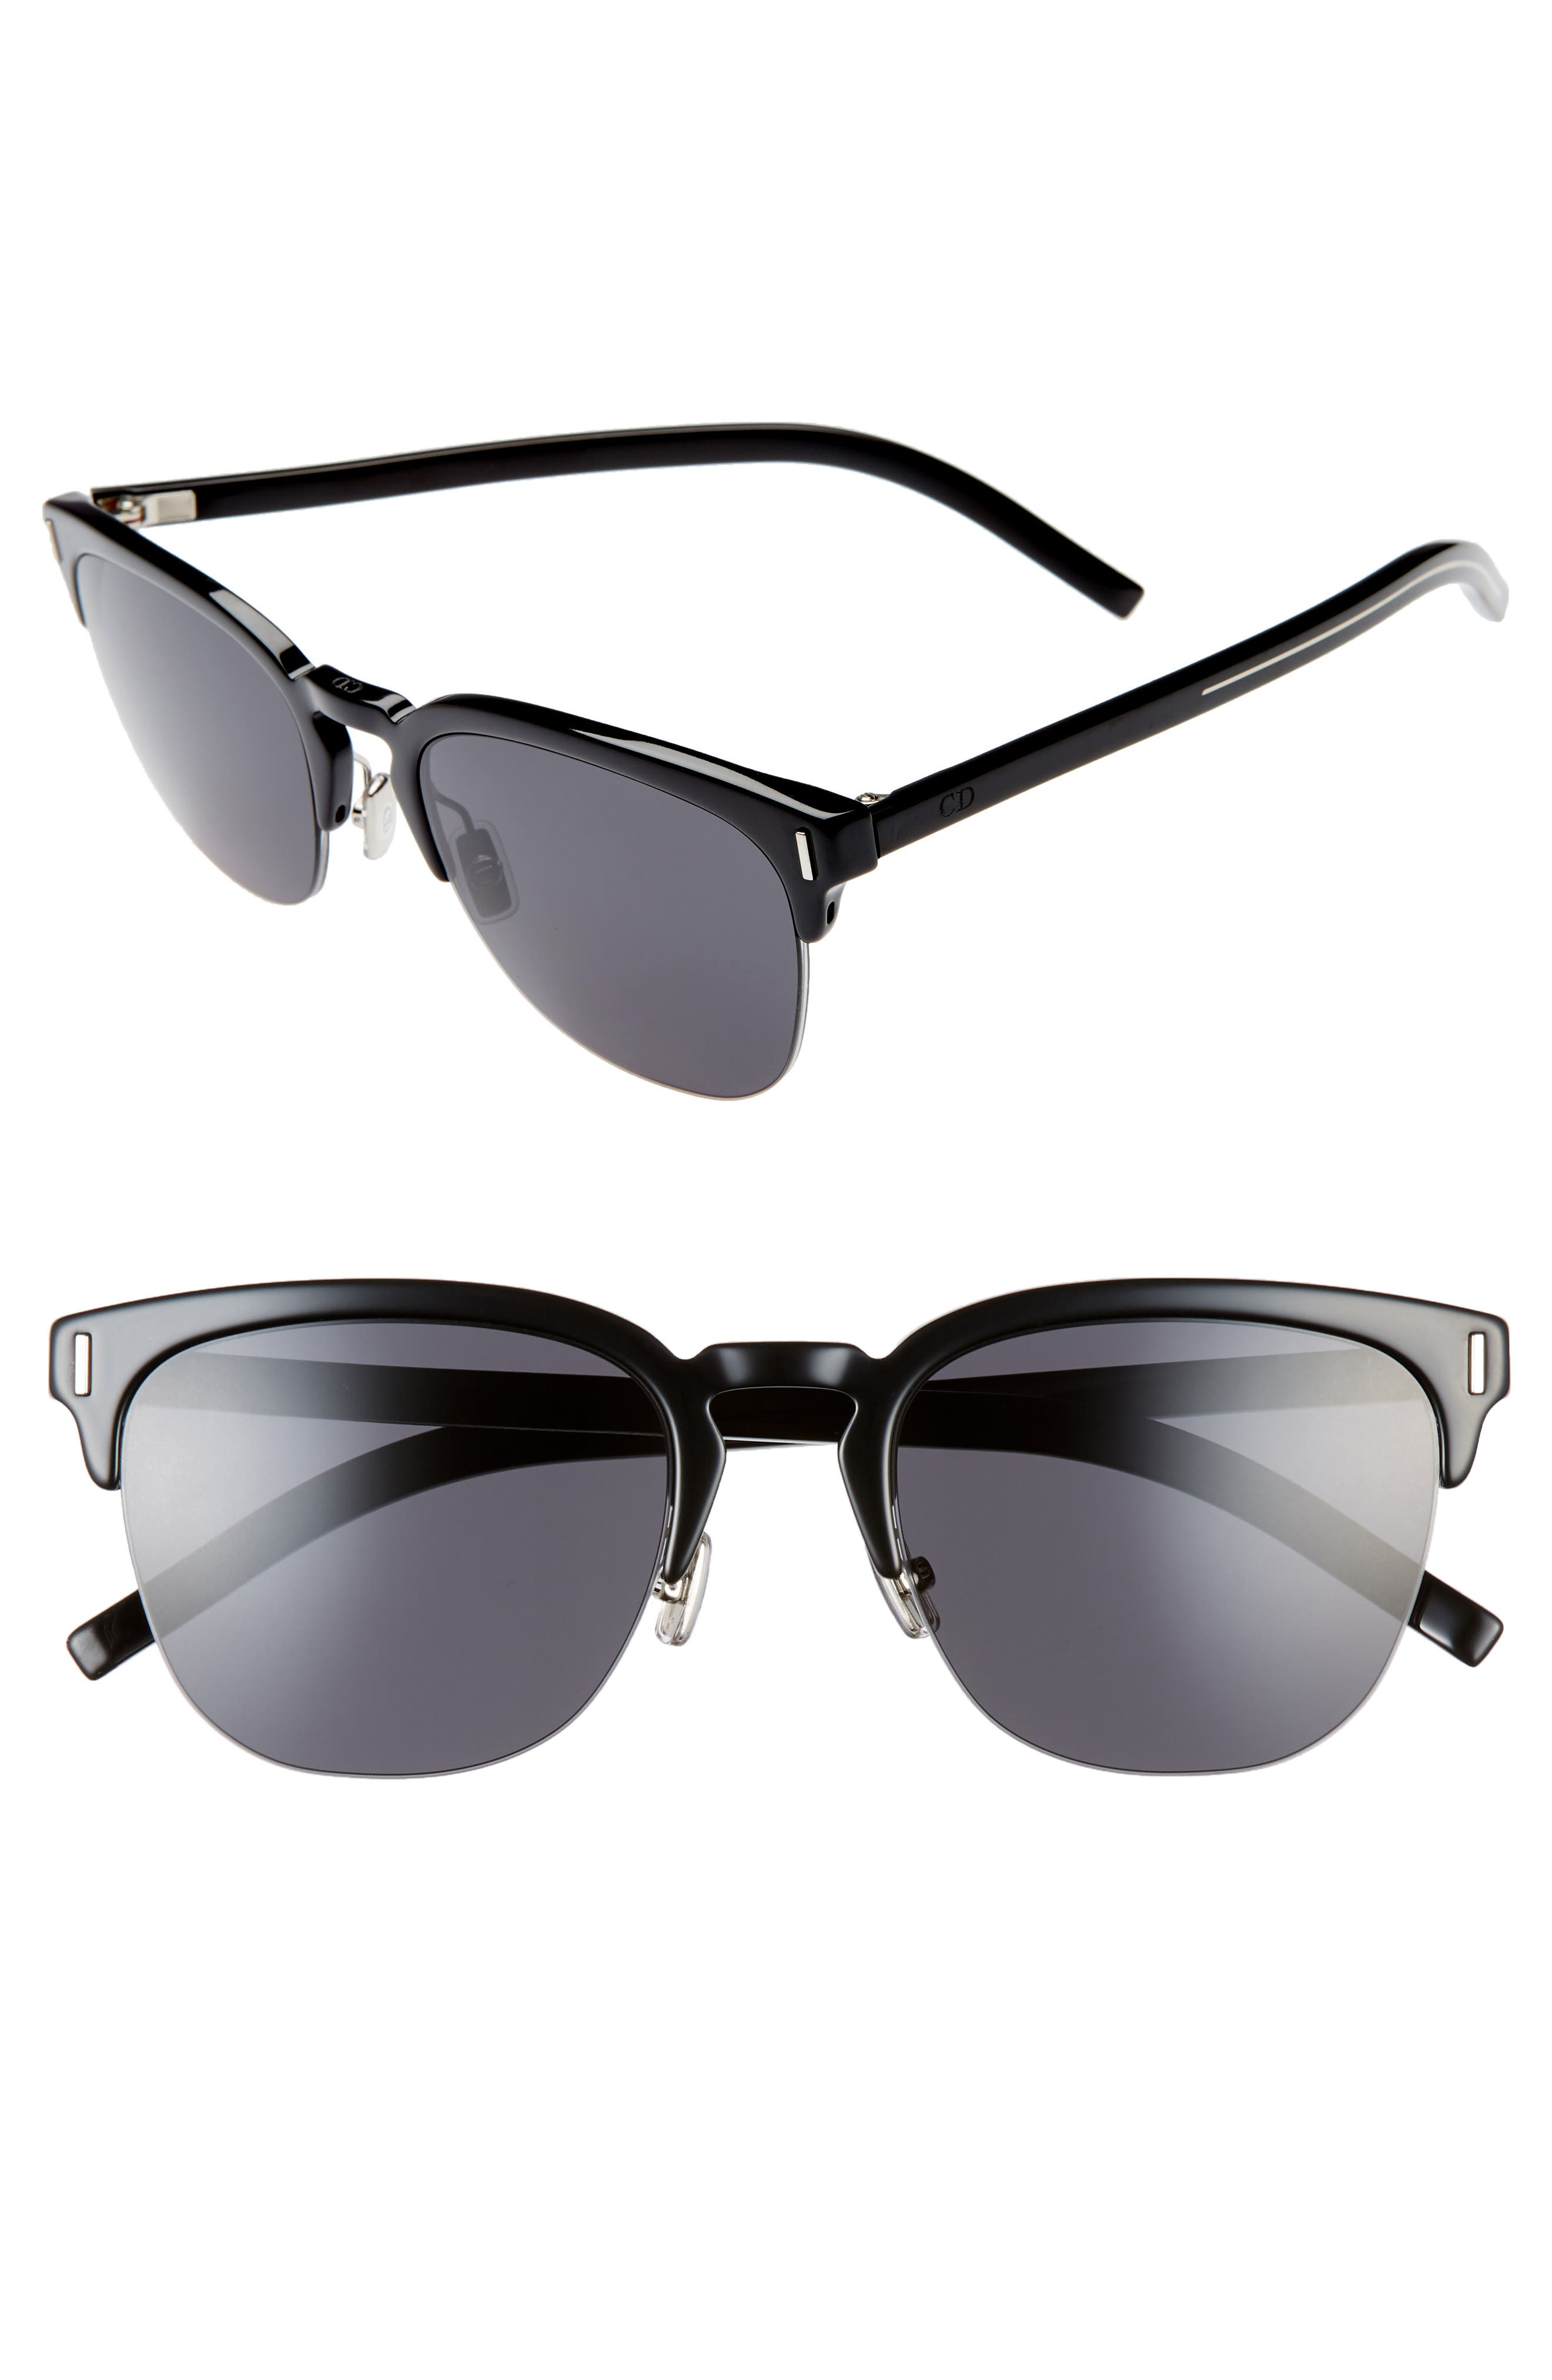 Dior Sunglasses Fraction 55mm Sunglasses